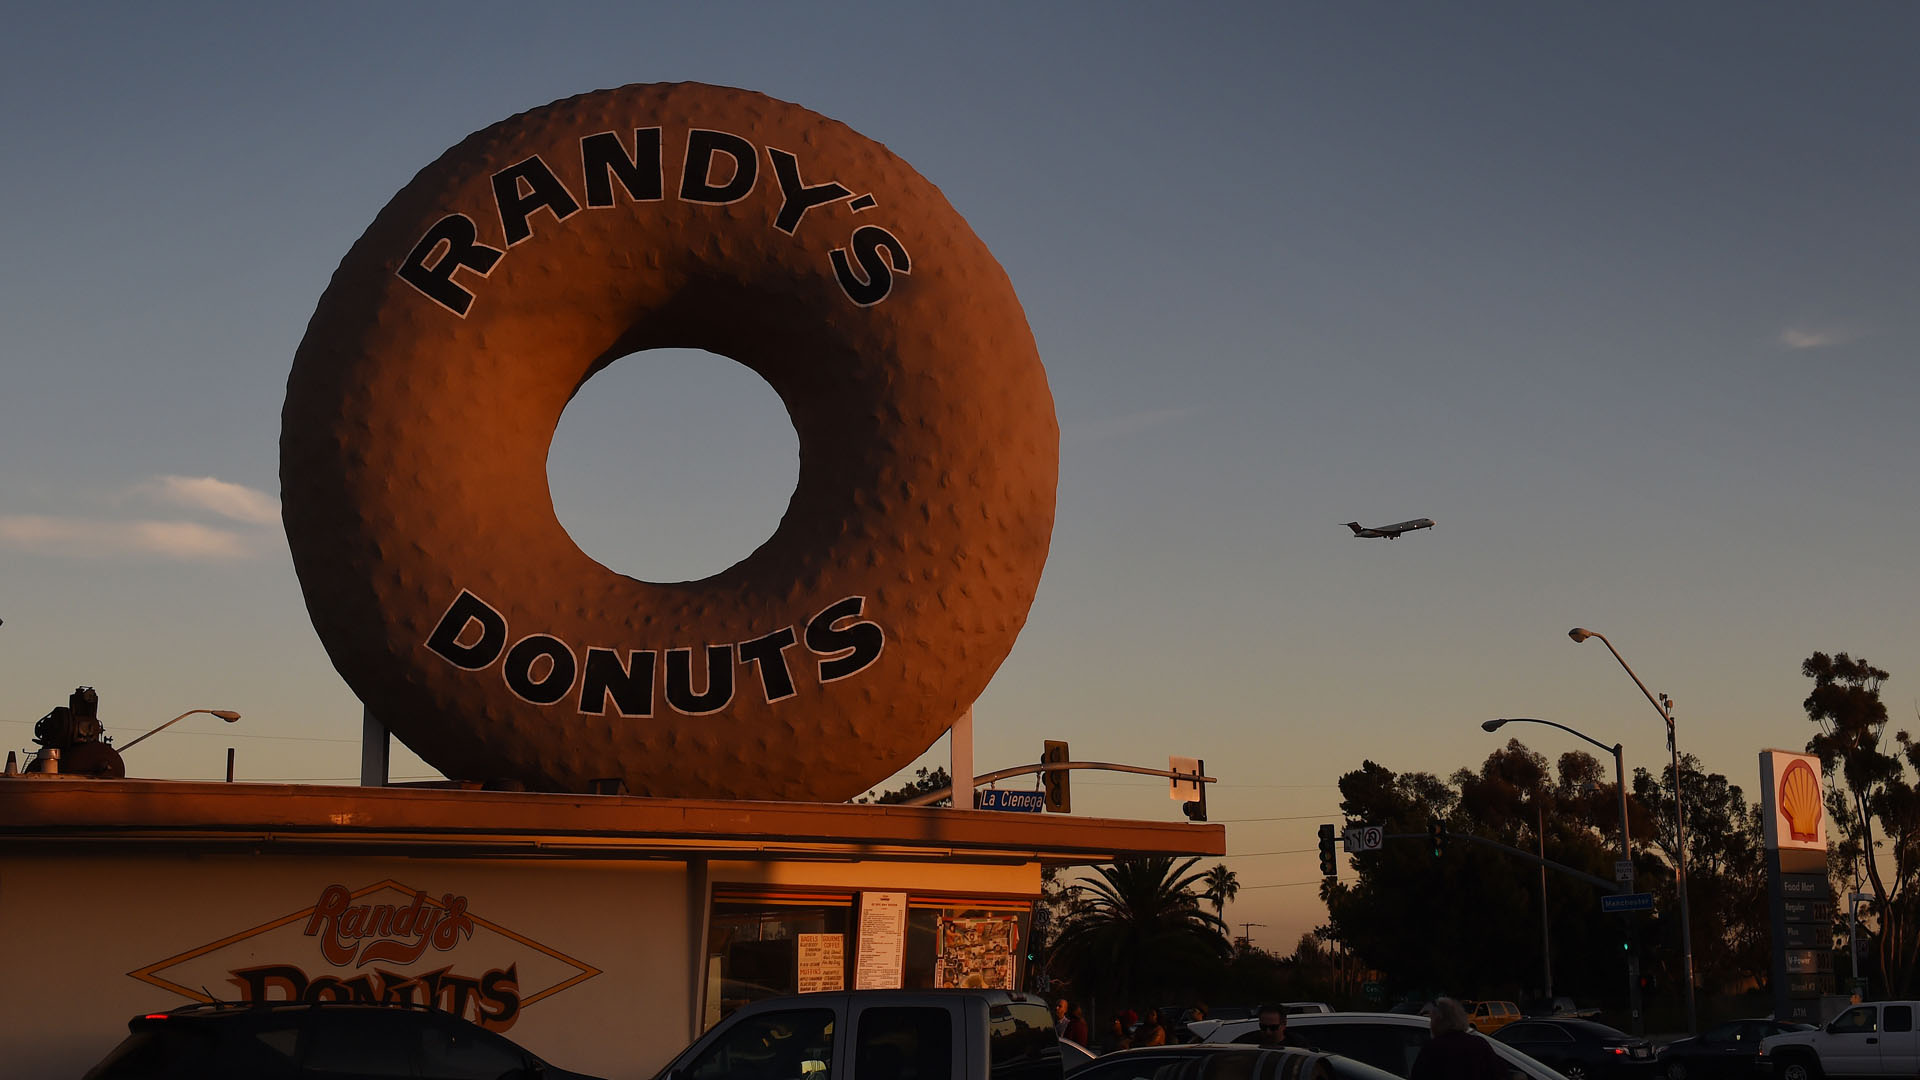 A Randy's Donuts shop is seen in the city of Inglewood on Jan. 24, 2016. (Credit: Mark Ralston/AFP/Getty Images)